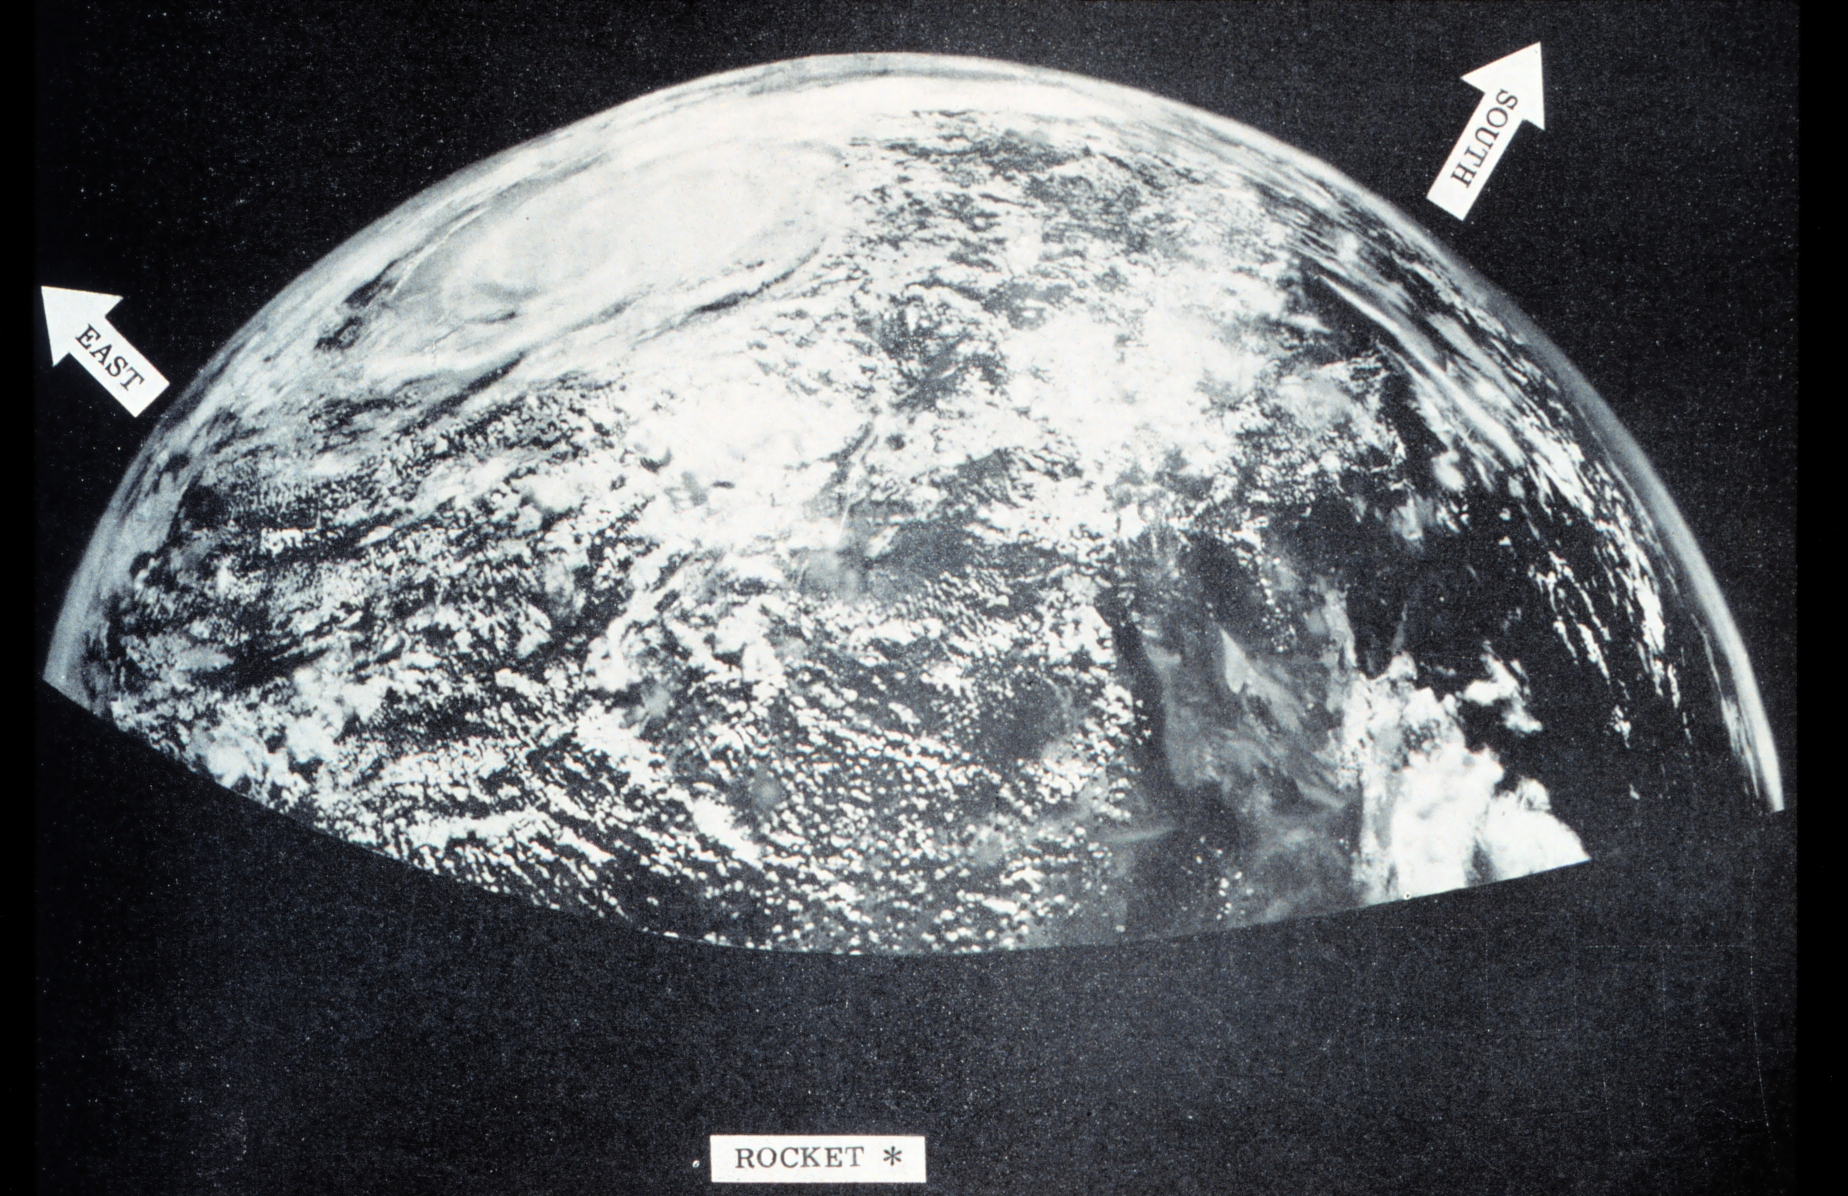 https://public-media.smithsonianmag.com/filer/7a/ec/7aecee2e-a030-4d75-9747-177fbdce2c21/viking_image_of_earth_1954.jpg